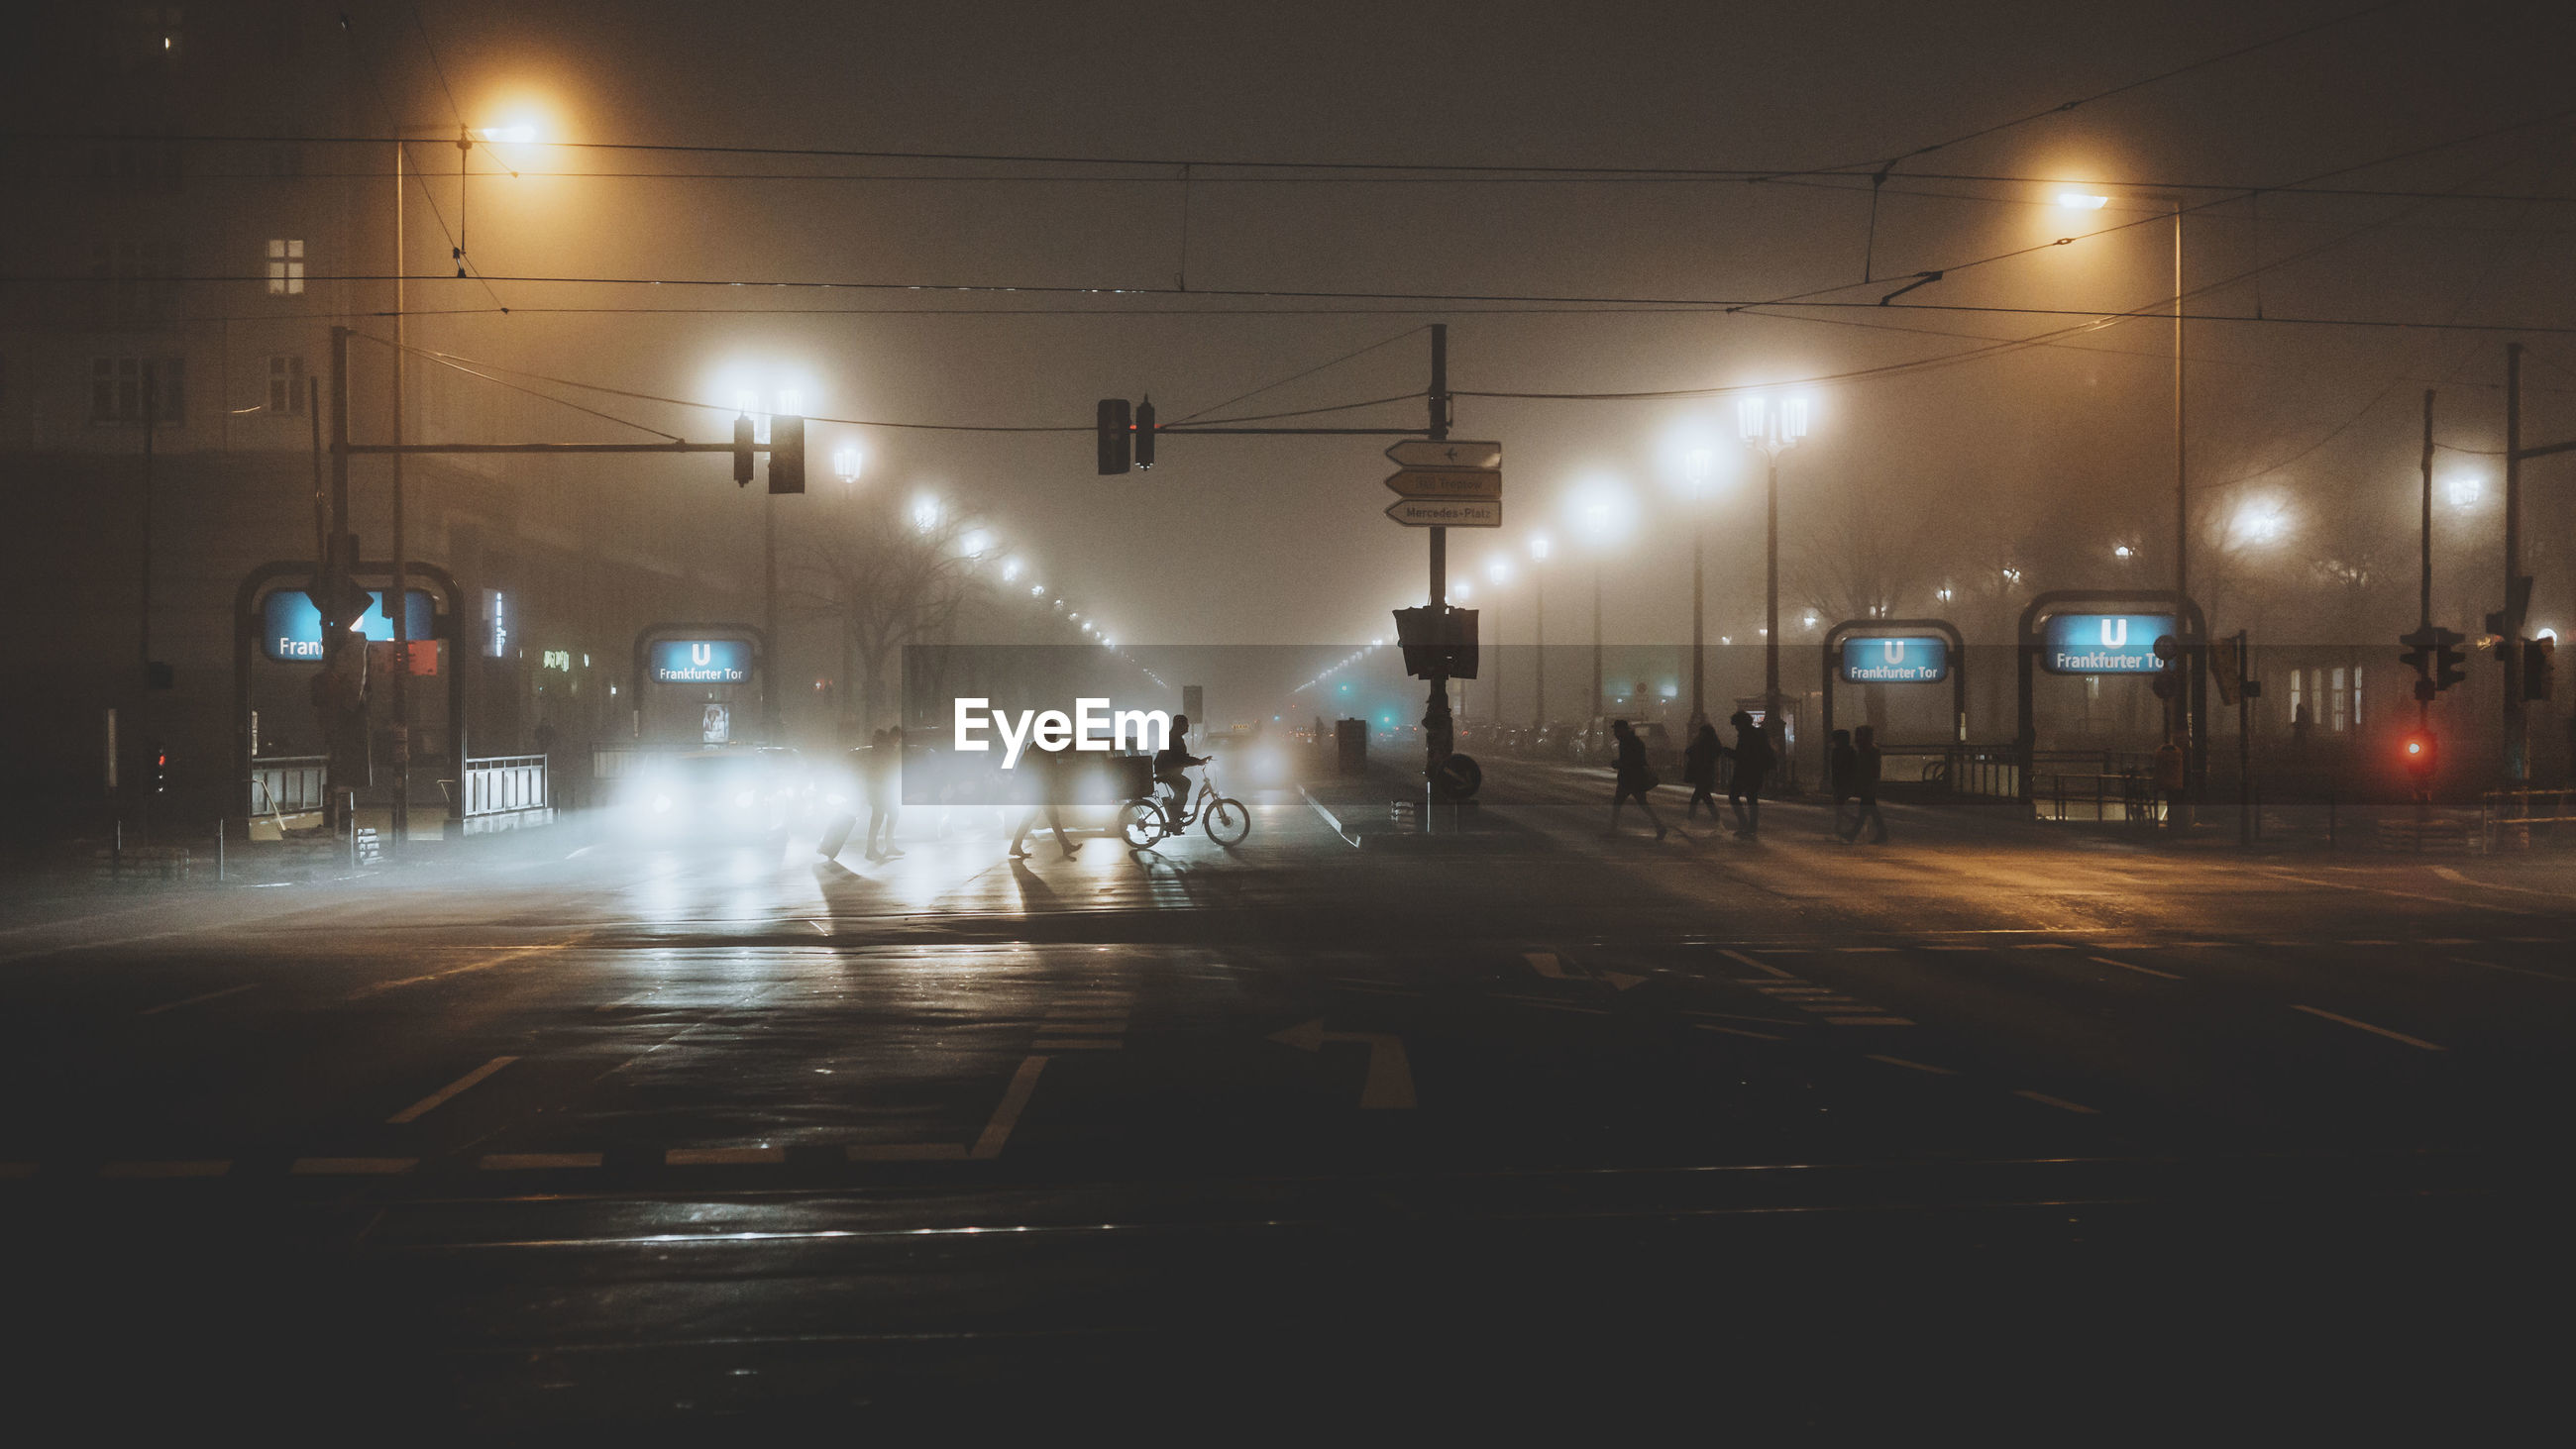 Silhouette people walking on illuminated street at night during foggy weather